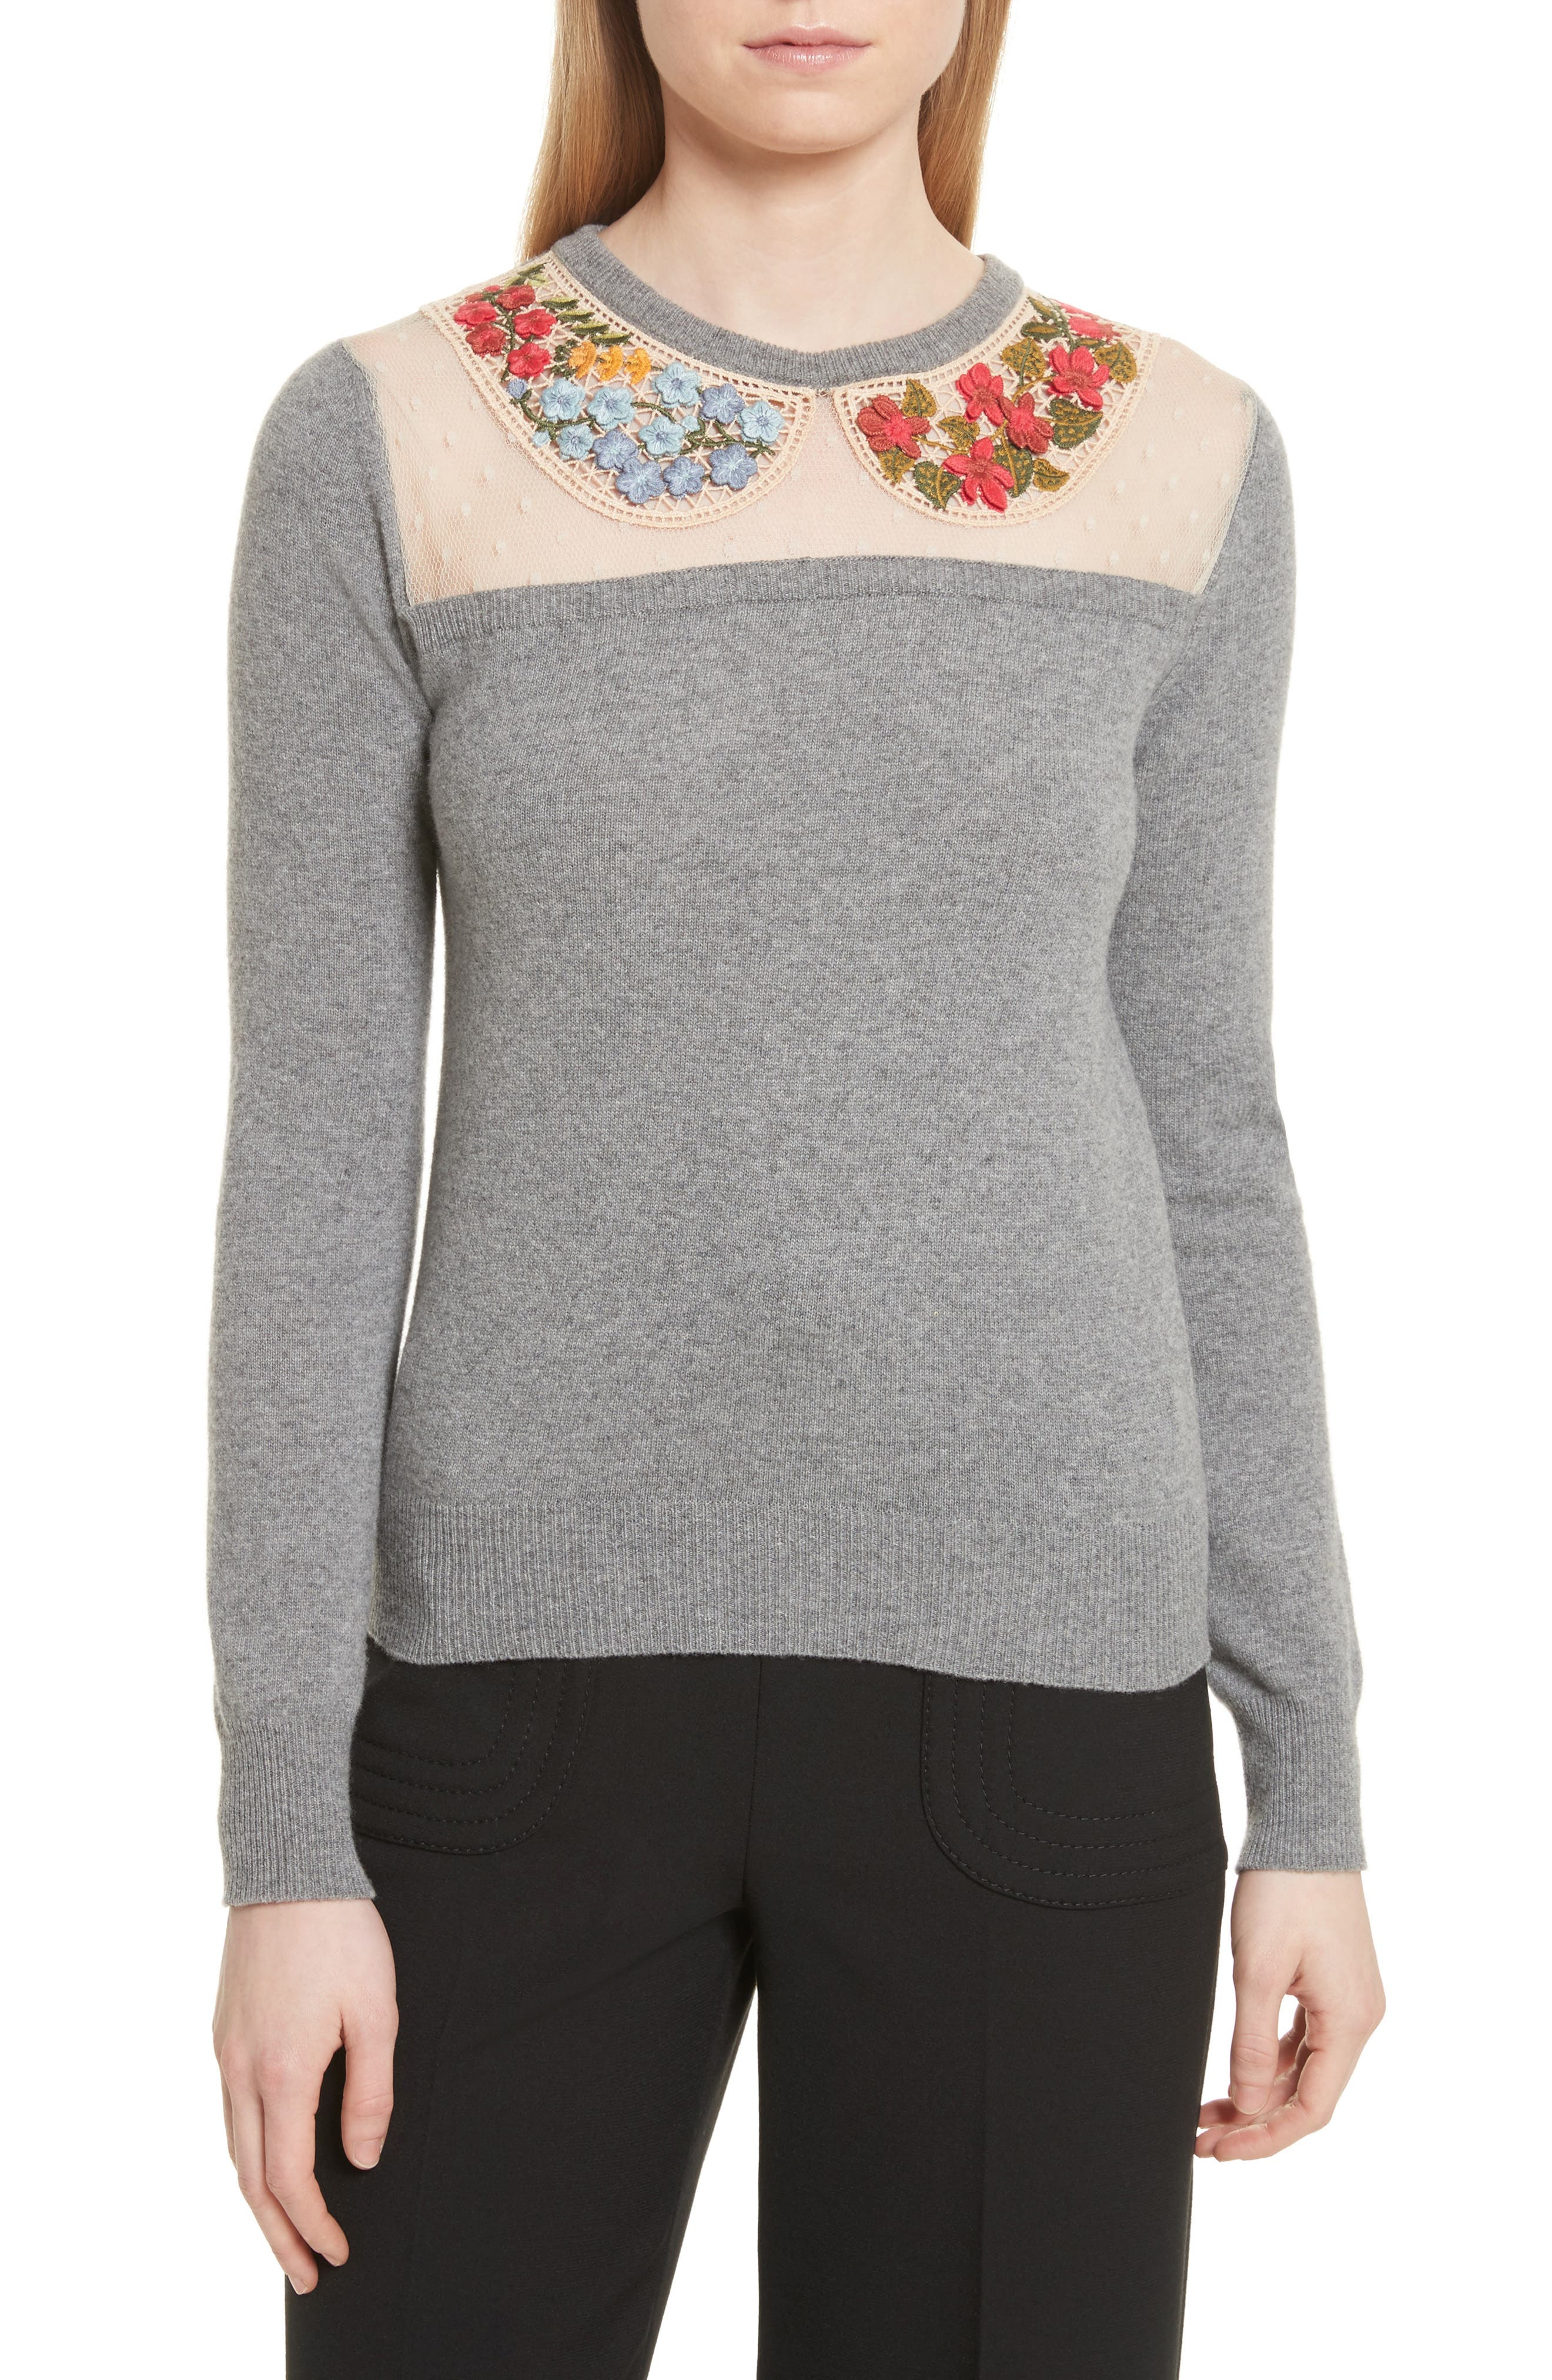 Macramé & Floral Embellished Wool Sweater,                         Main,                         color, Grey